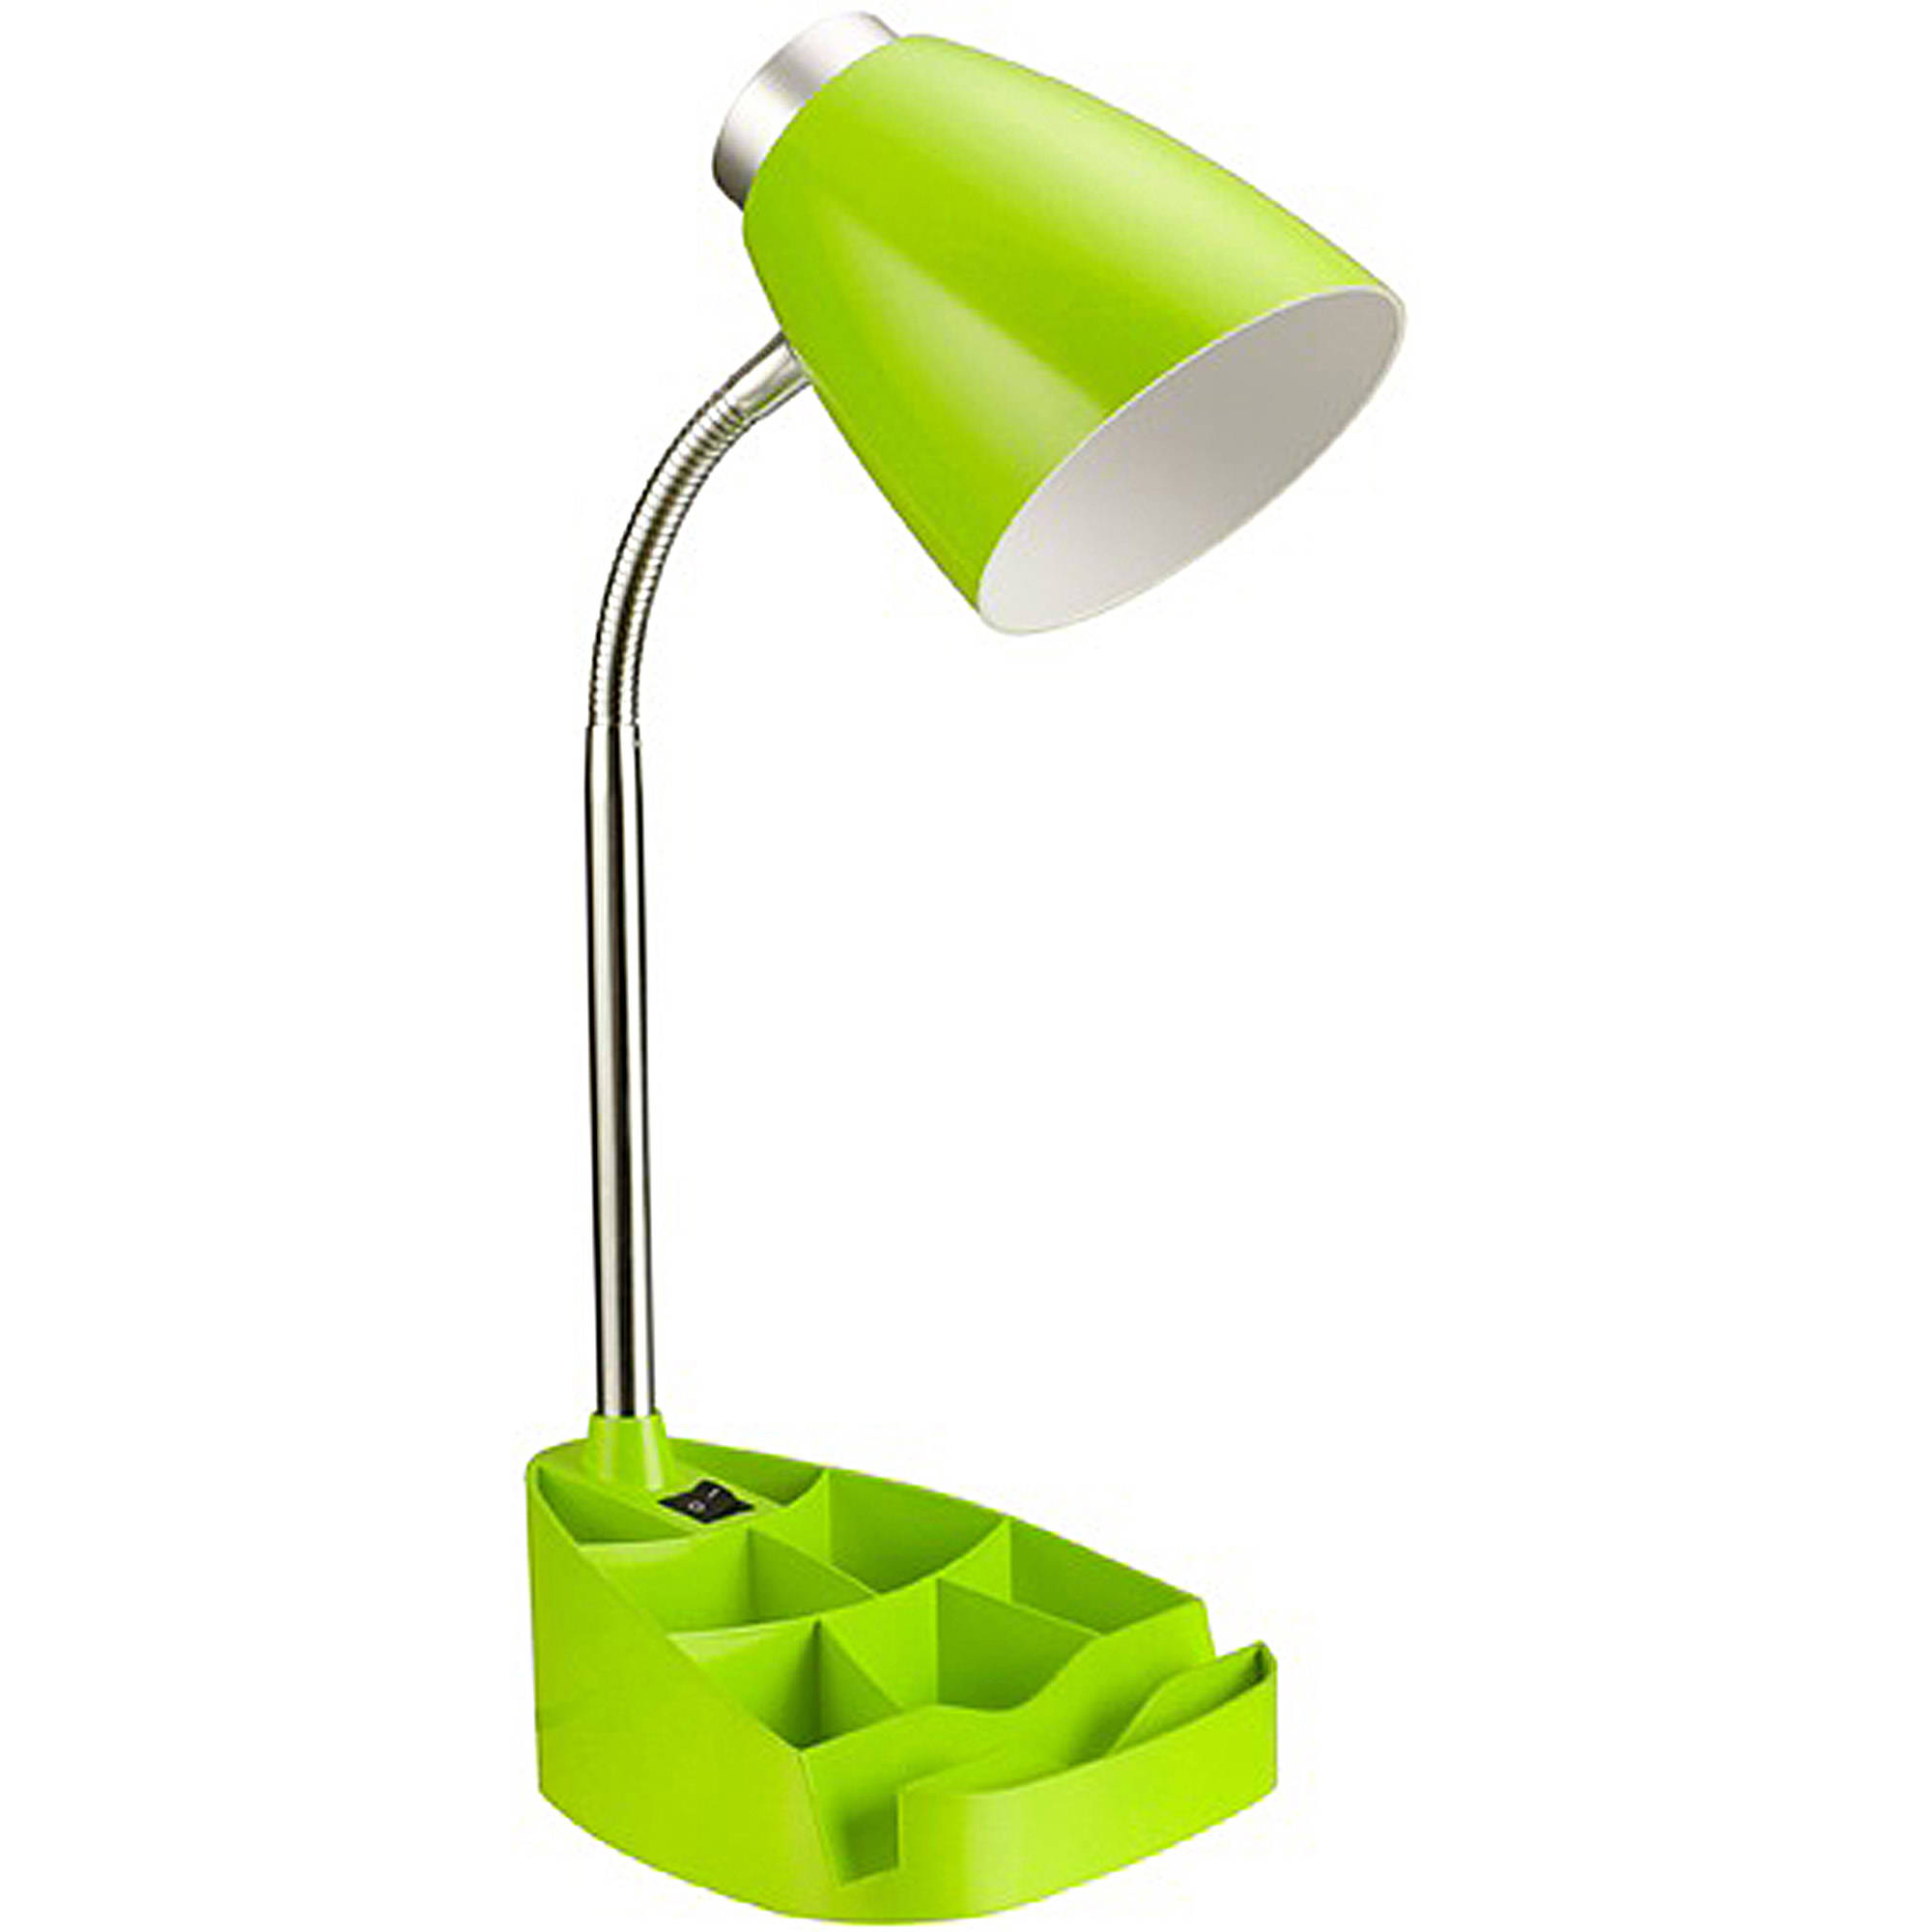 Limelights Neon Green Gooseneck Organizer Desk Lamp with iPad ...